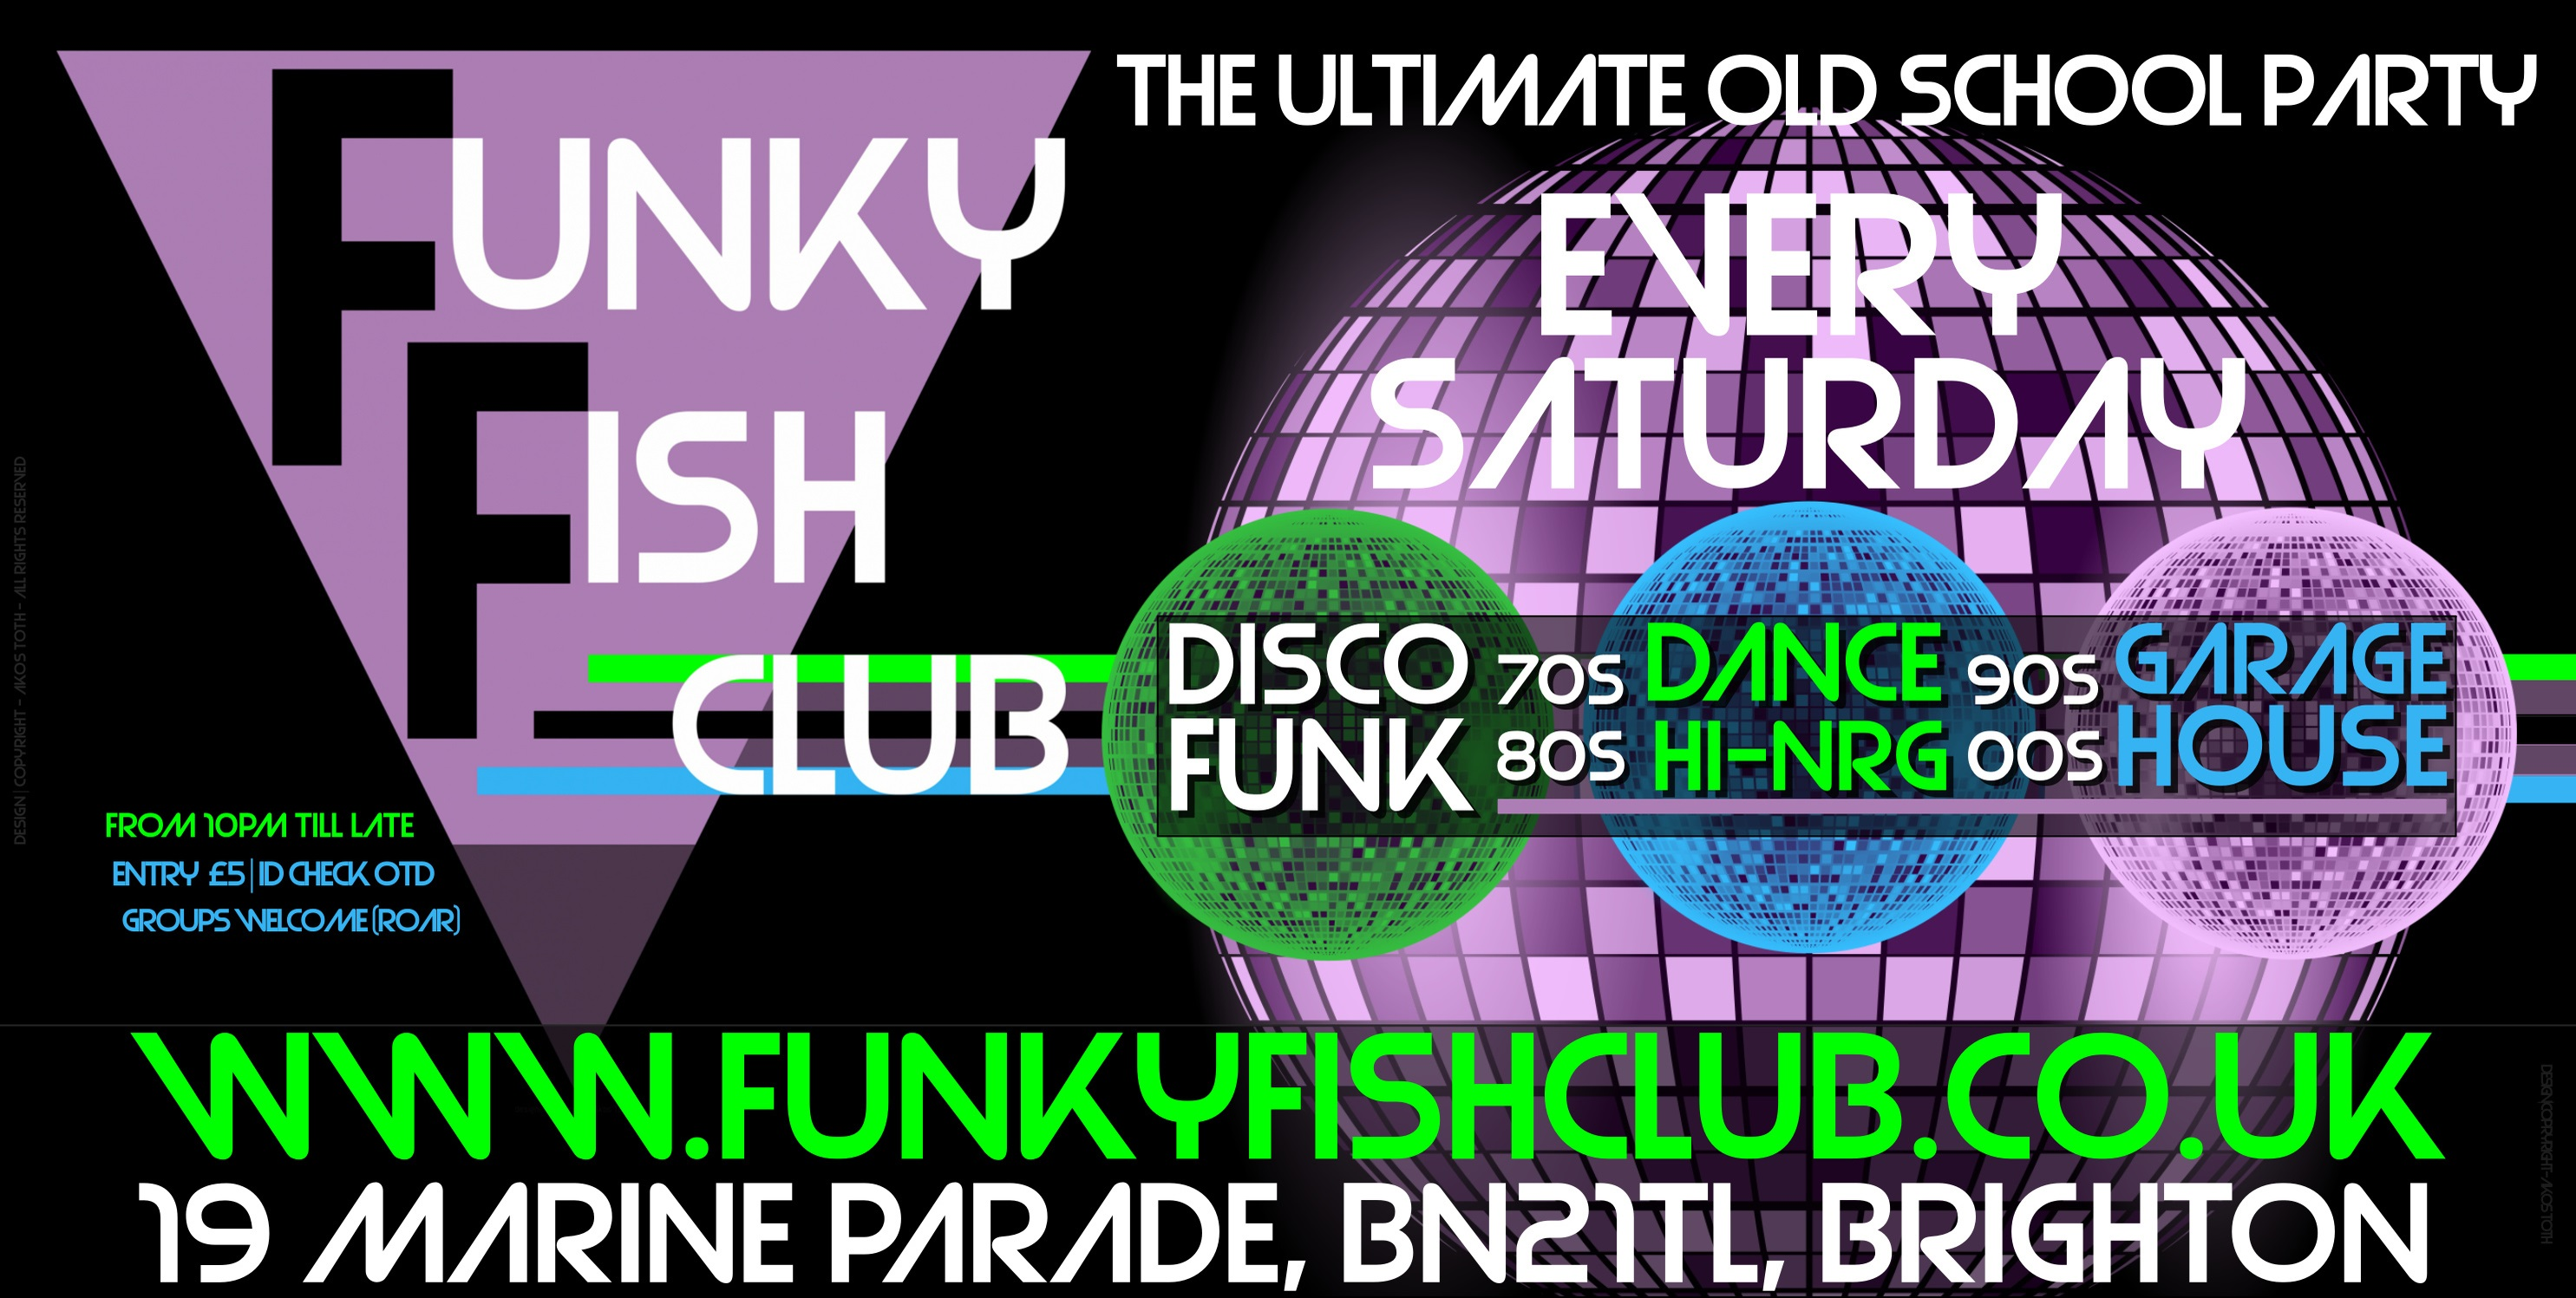 Saturday Club Night The Ultimate Old School Party